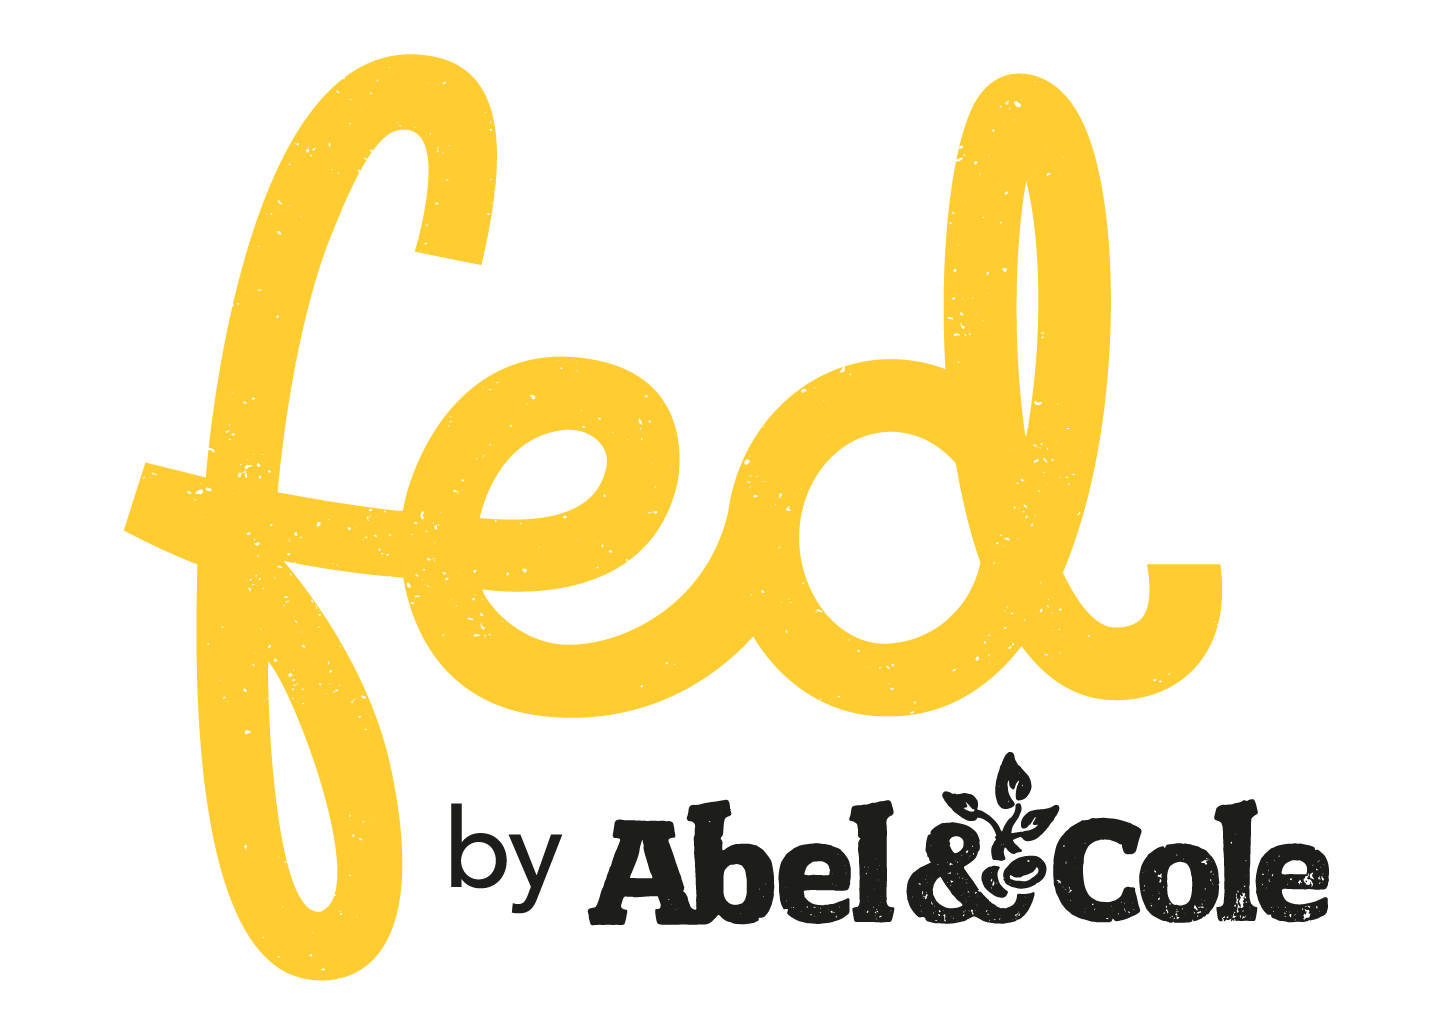 Fed by Abel & Cole